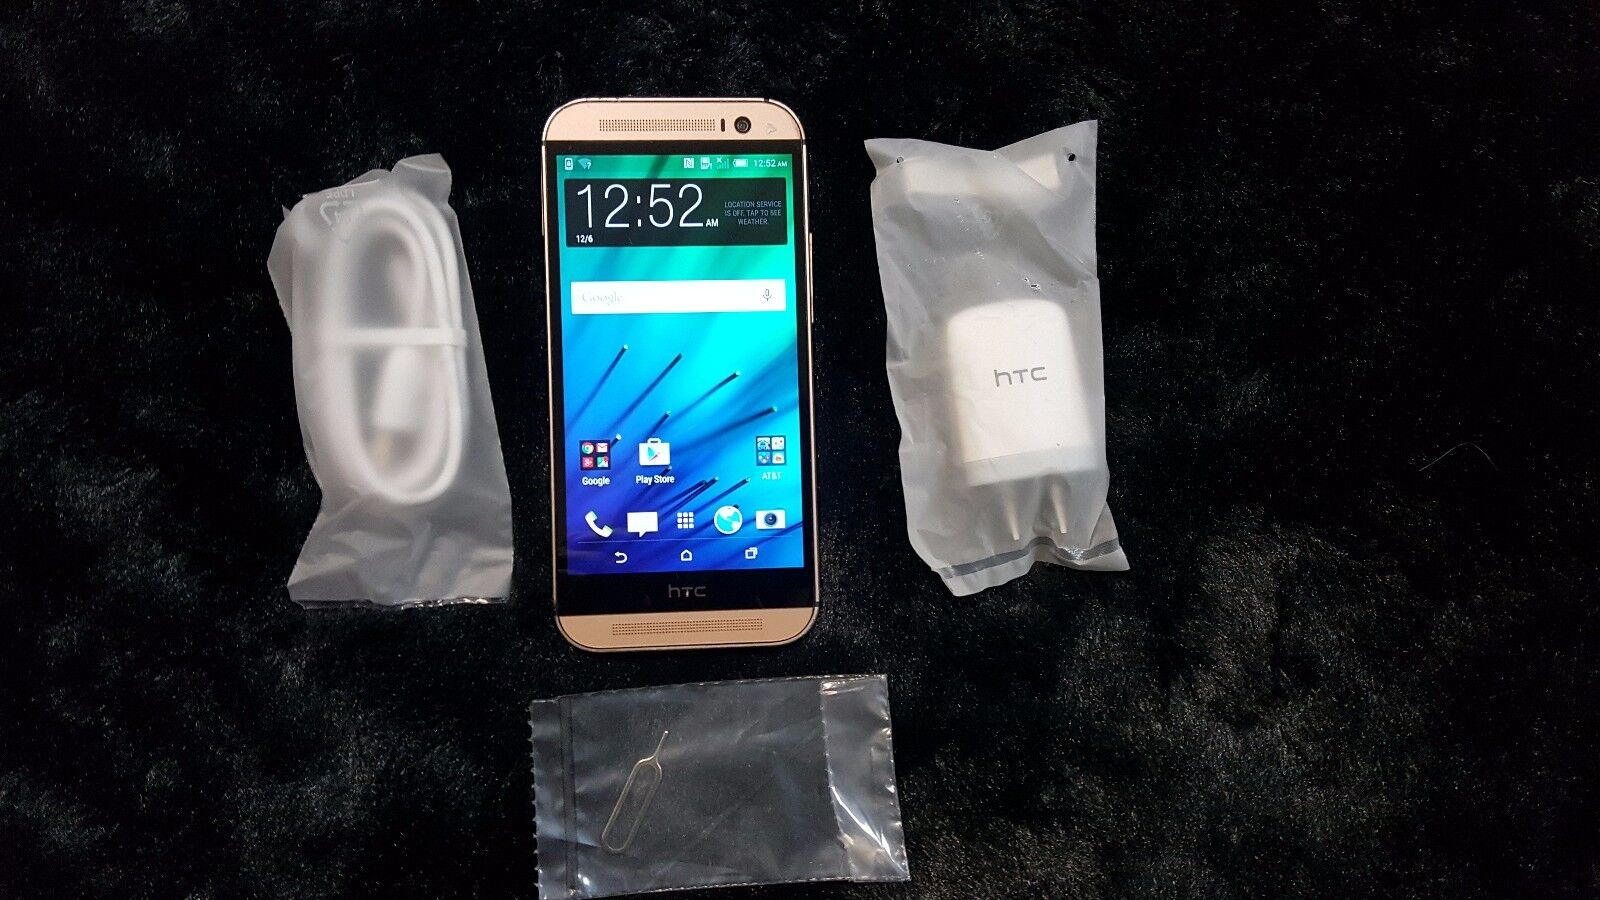 Htc One - PreOwned Used HTC One M8 32GB Gold GSM Unlocked Android 4G LTE Smartphone.